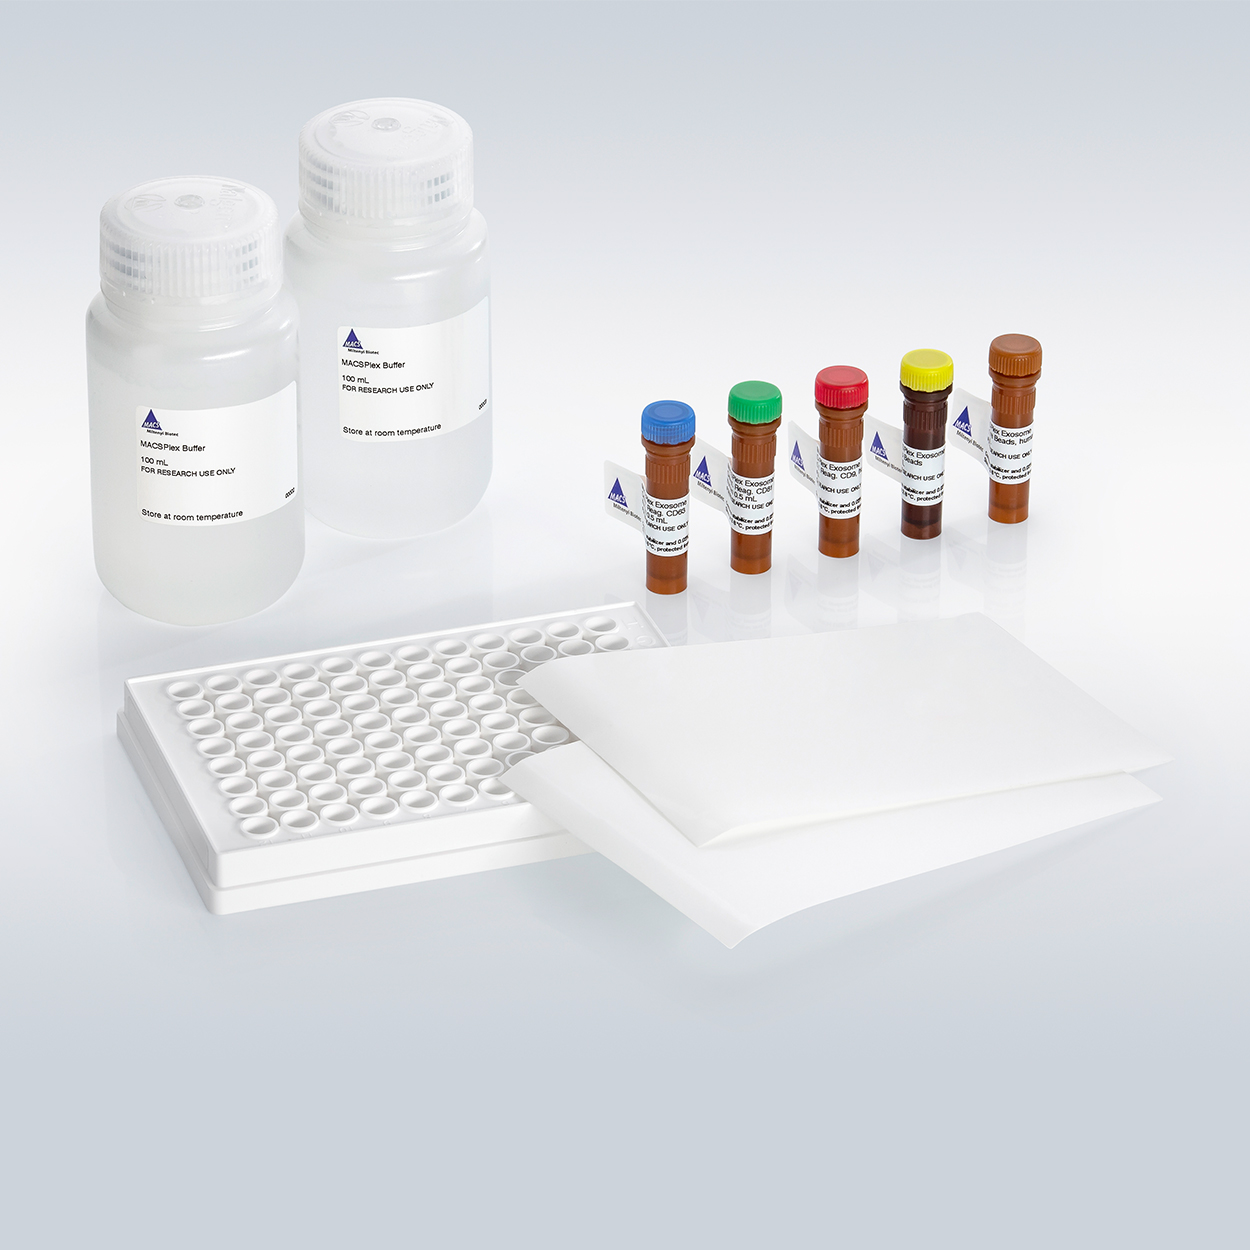 MACSPlex Exosome Kit, human